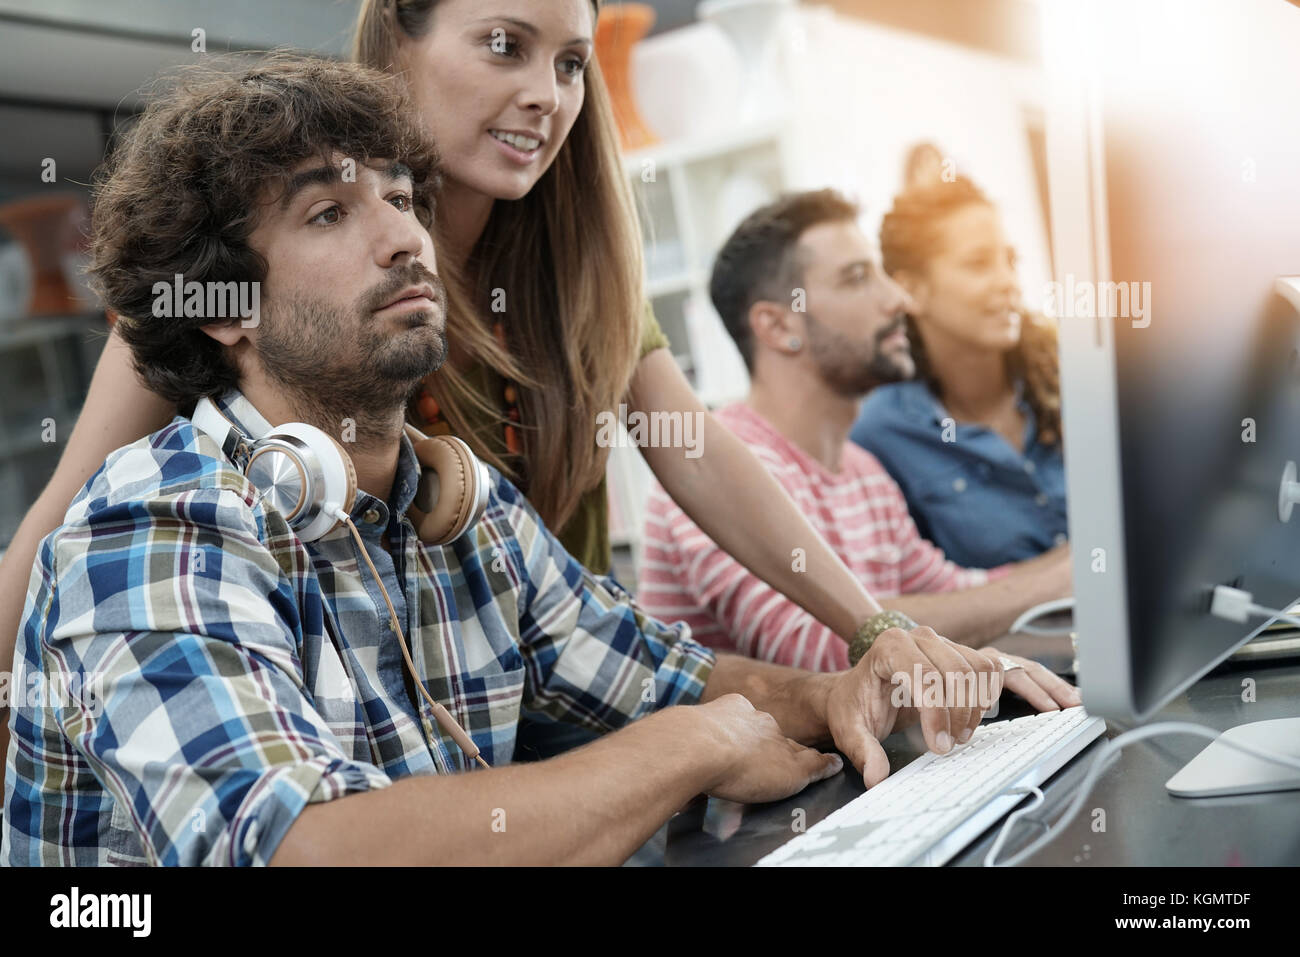 Co-workers in office working on project in desktop - Stock Image